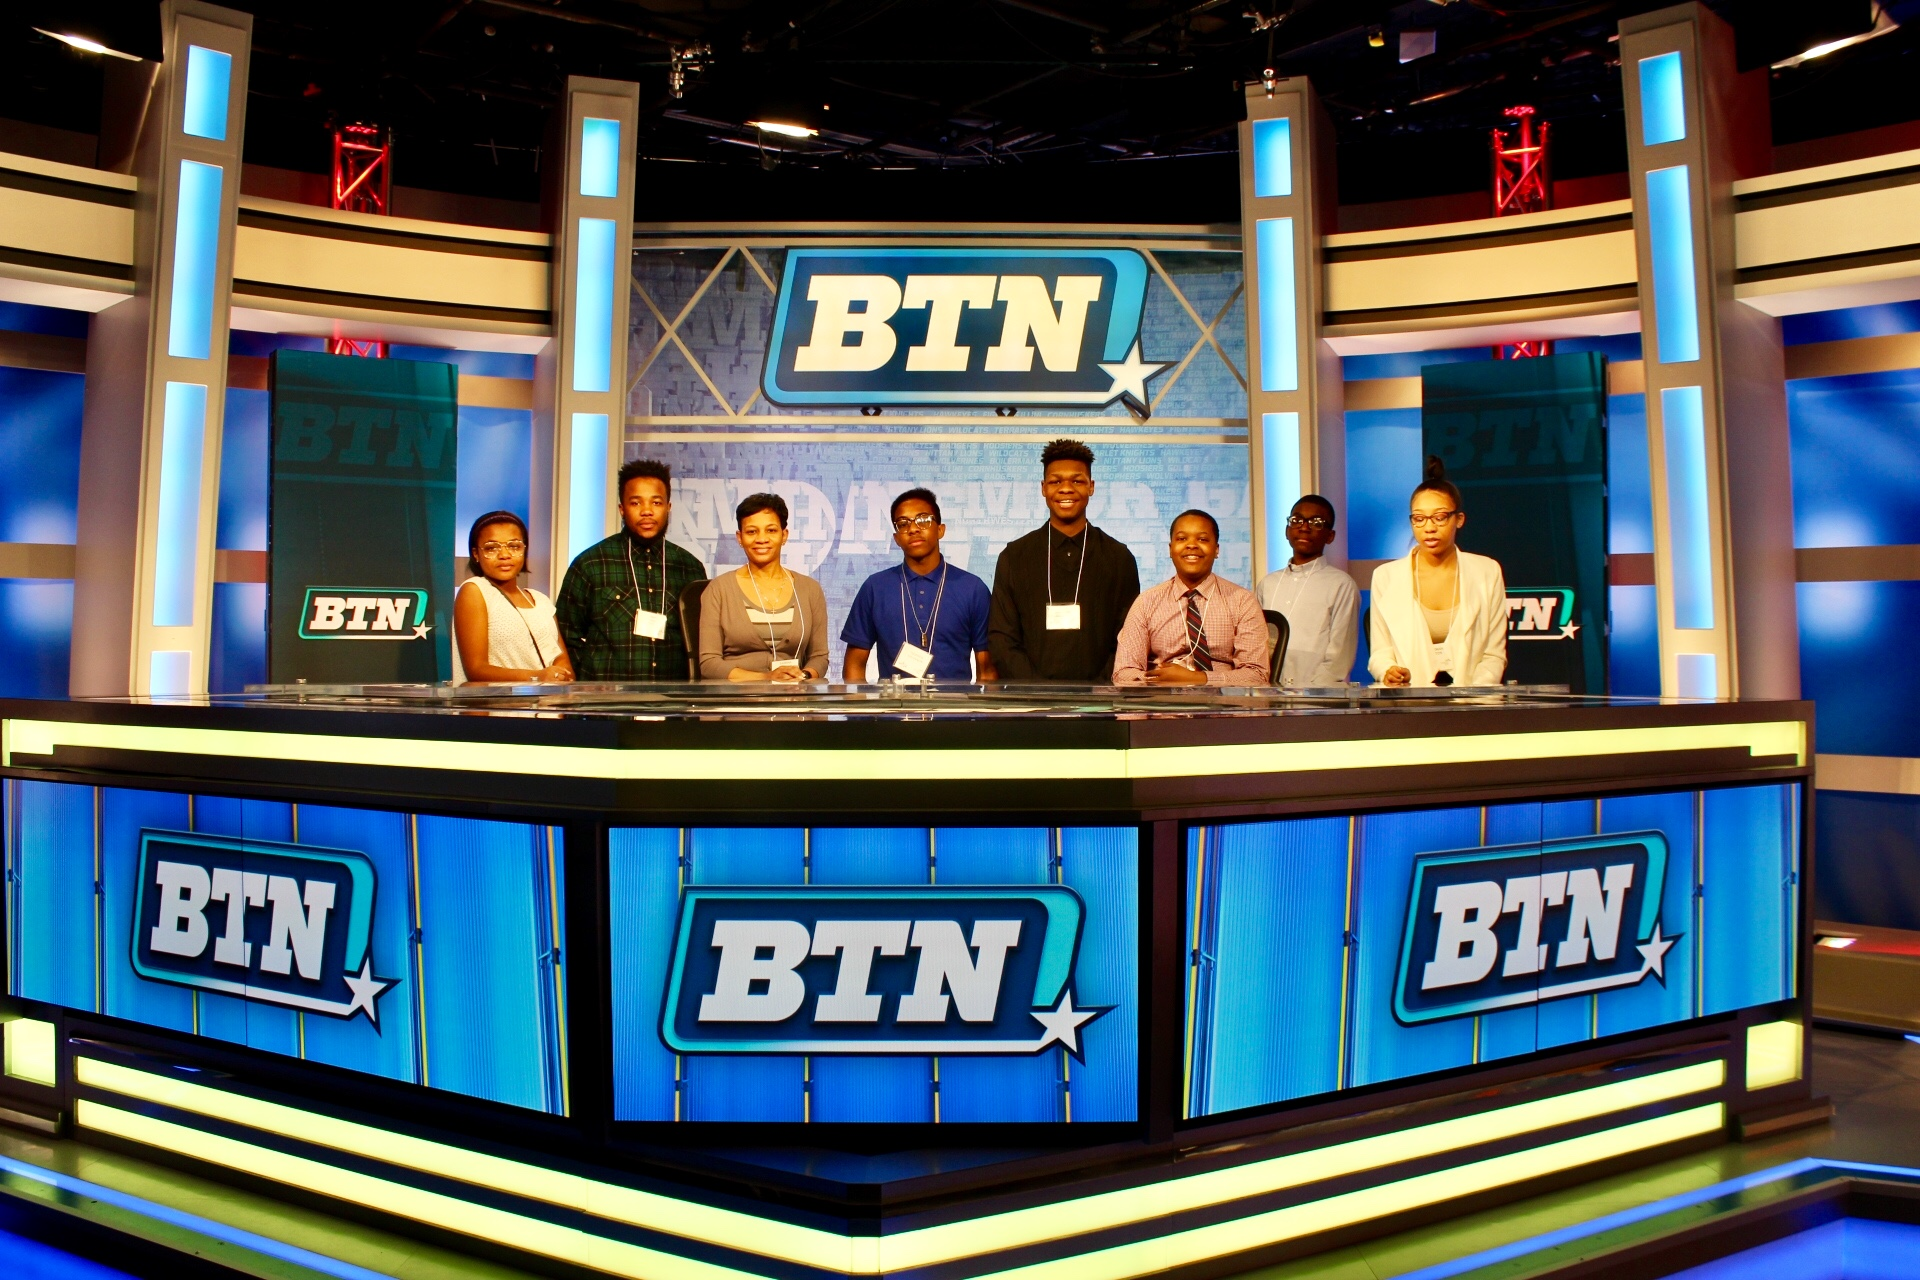 Looking camera ready on the Big Ten Network studio set